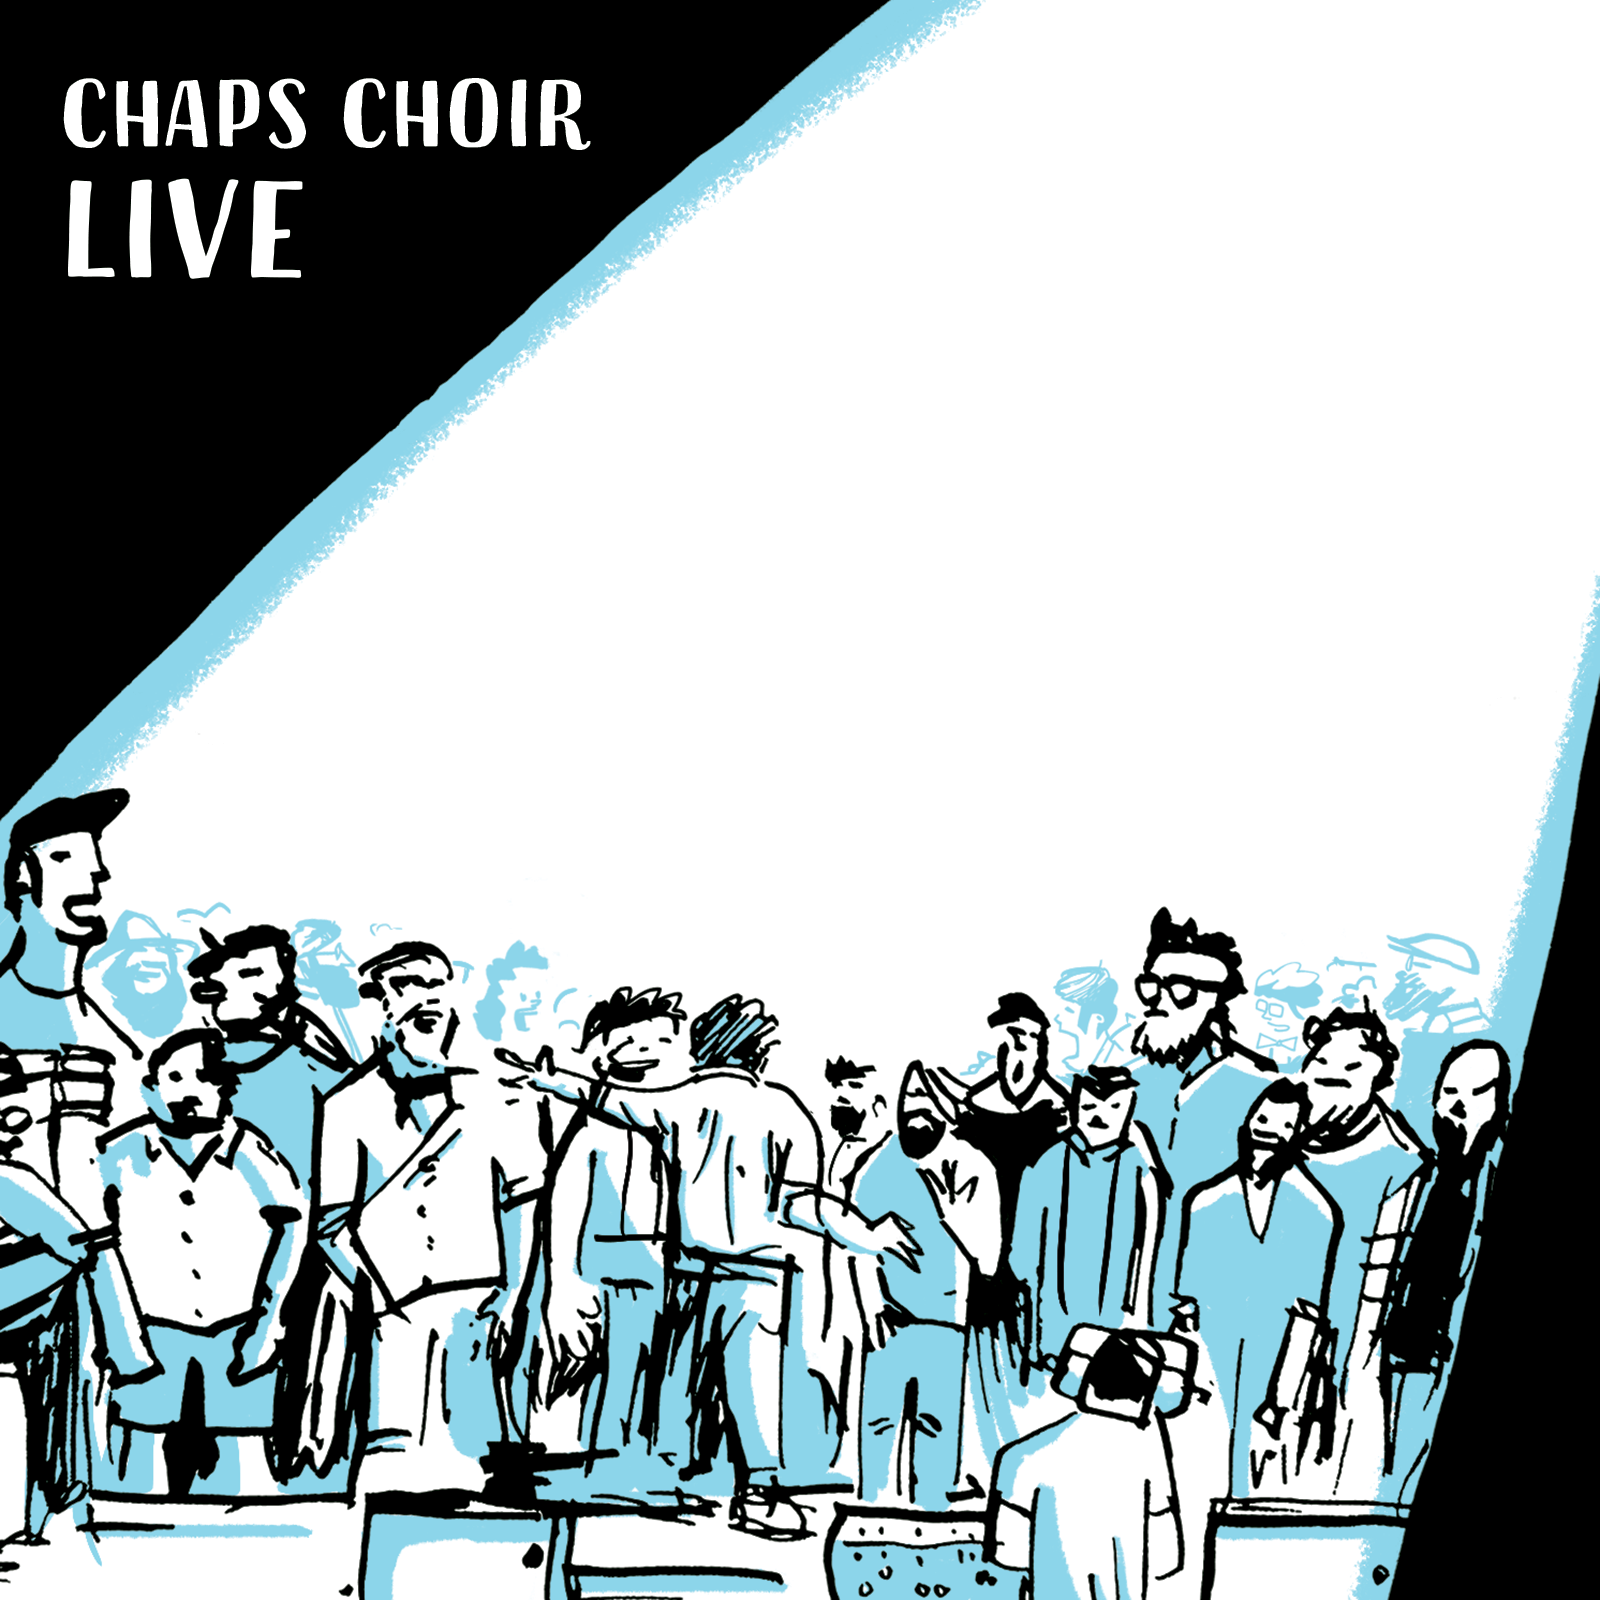 CHAPS CHOIR LIVE - LIVE ALBUM-------------------Featuring the chaps singing their favourite rock and pop bangers, taken from our live shows at the Union Chapel and including a hot hot line-up of accompanying musicians.1) You're The Voice 2) The Logical Song 3) I Wanna Dance With Somebody (Who Loves Me) 4) Don't Want To Know 5) A Drop Of Shanty 6) Cucurucu 7) Hurt (feat. Chris Thow) 8) The Loving 9) Now Is Time 10) Song To The Siren I1) Shall Be Released- 11 track CD in 4 panel colour printed digipak- Worldwide shipping!Artwork by Dylan WhiteAvailable on iTunes / Apple Music from 3rd July 2019